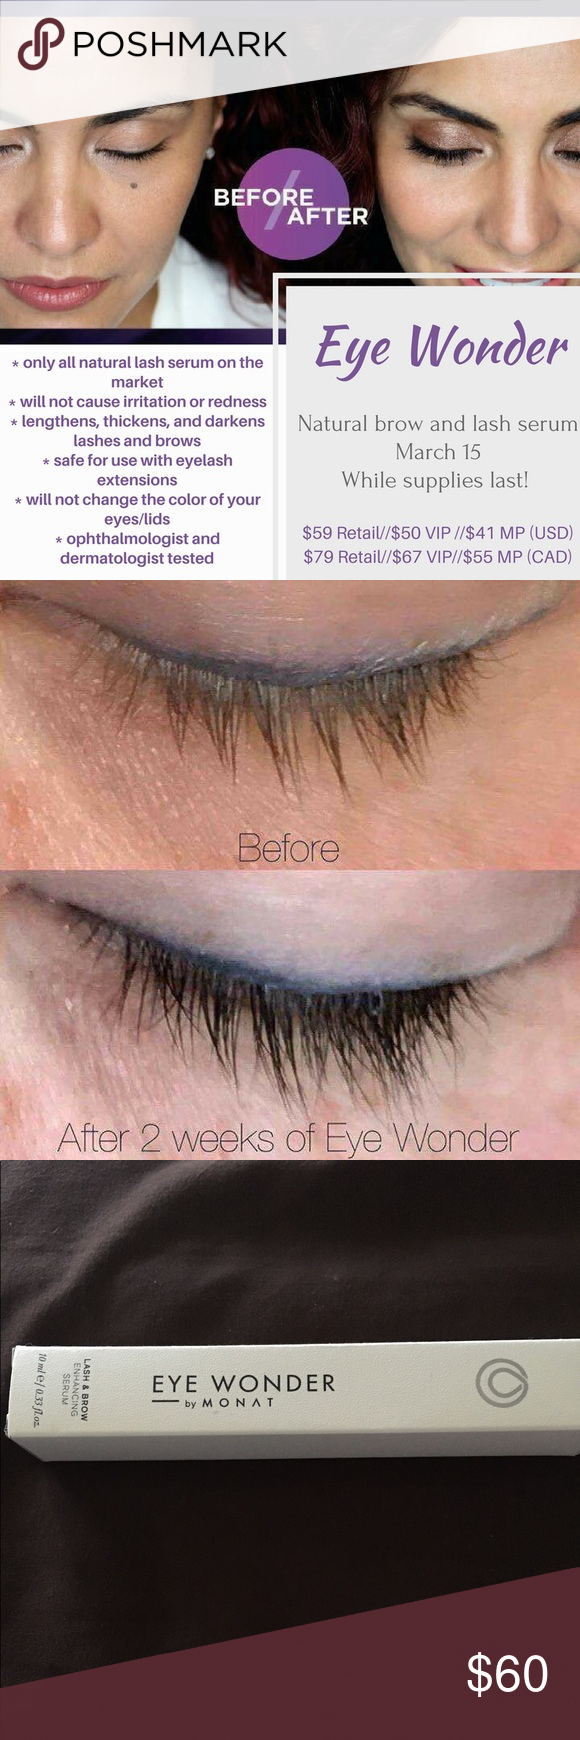 3999474a279 MONAT EYE WONDER BENEFITS Eye Wonder is a high-performance serum formulated  with clinically proven